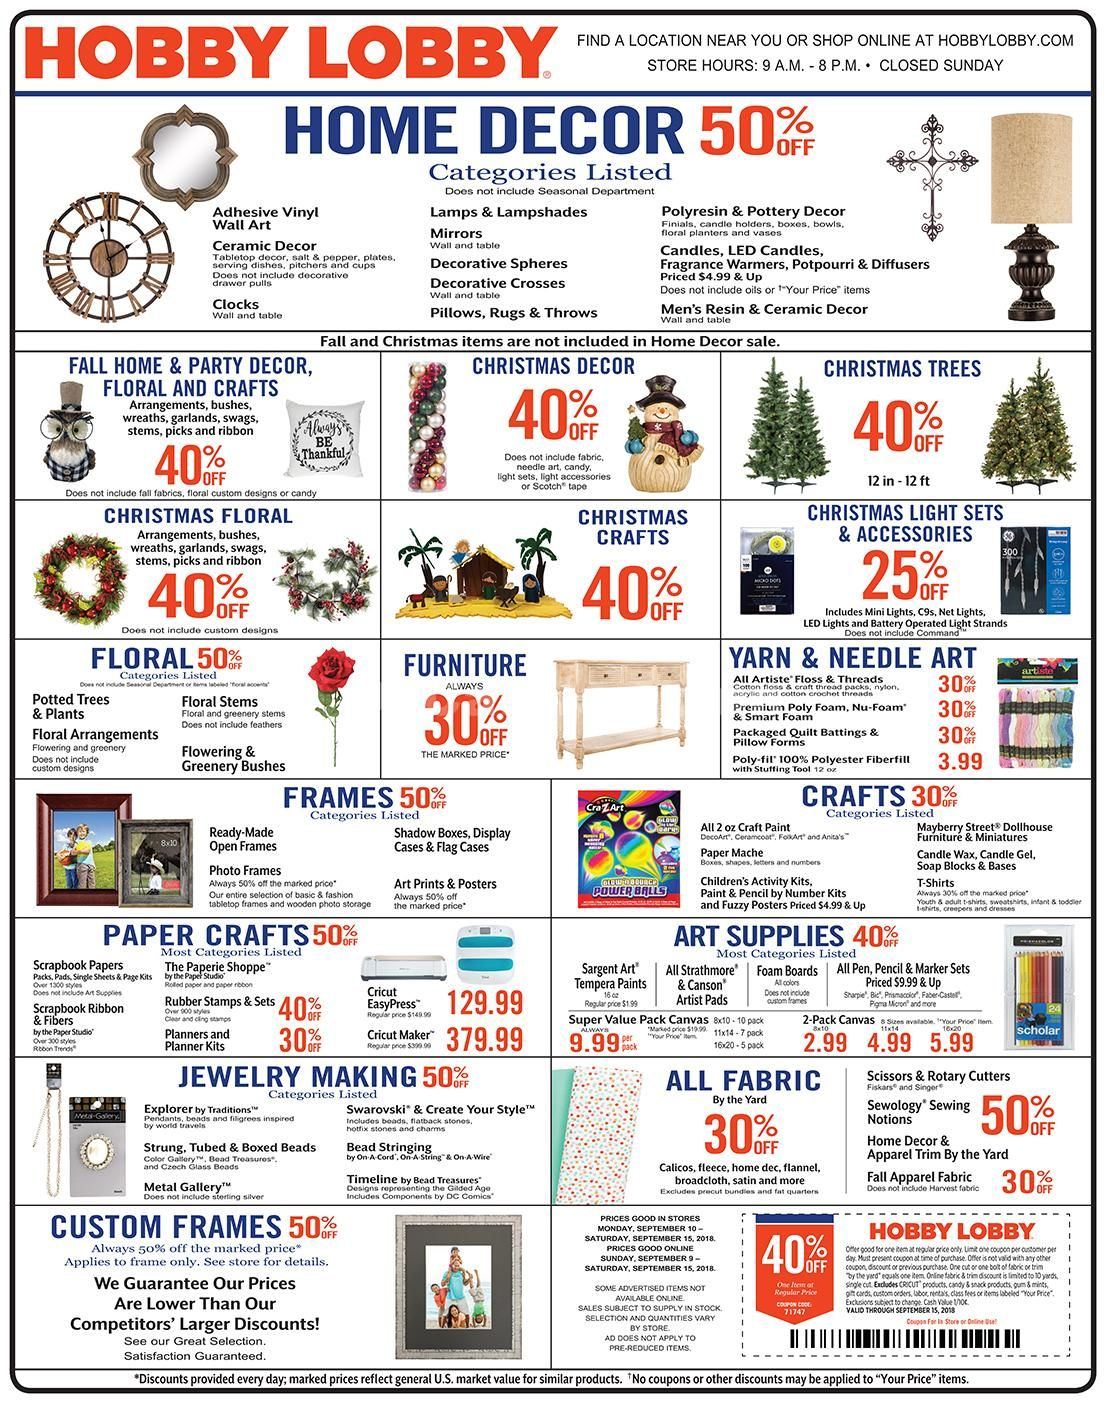 Hobby Lobby Framing Coupon   www.topsimages.com